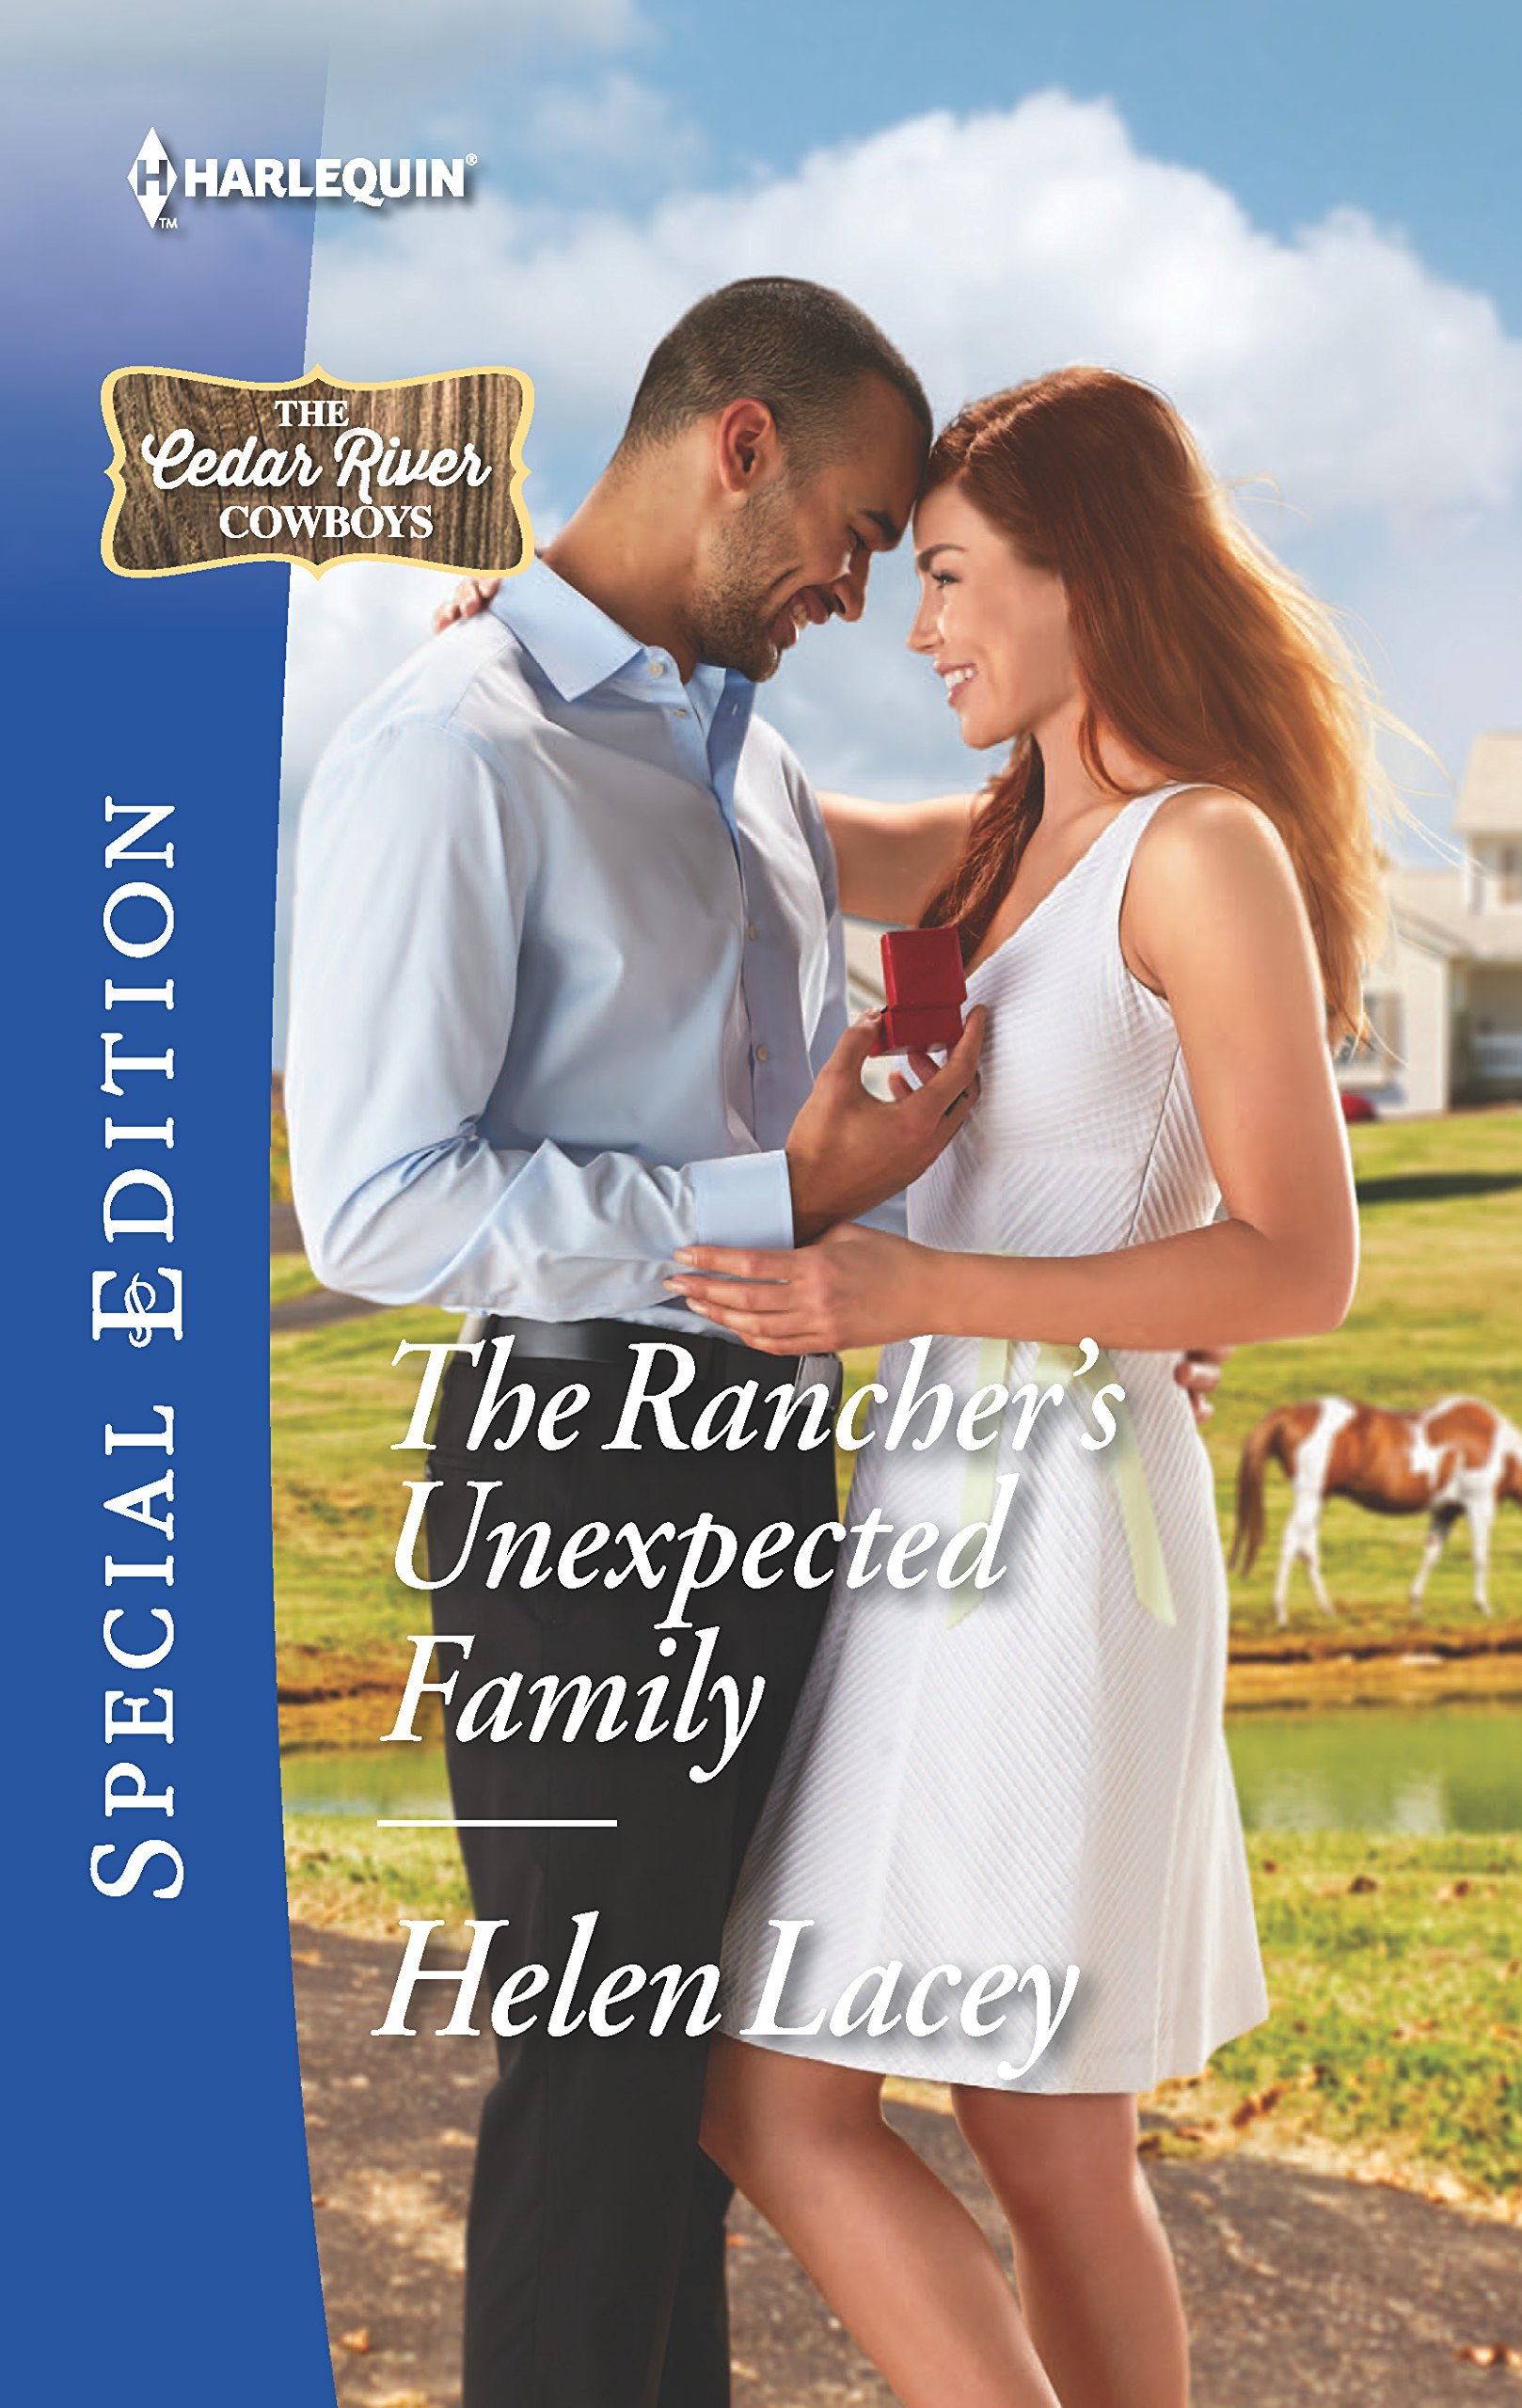 Read Online The Rancher's Unexpected Family (The Cedar River Cowboys) pdf epub